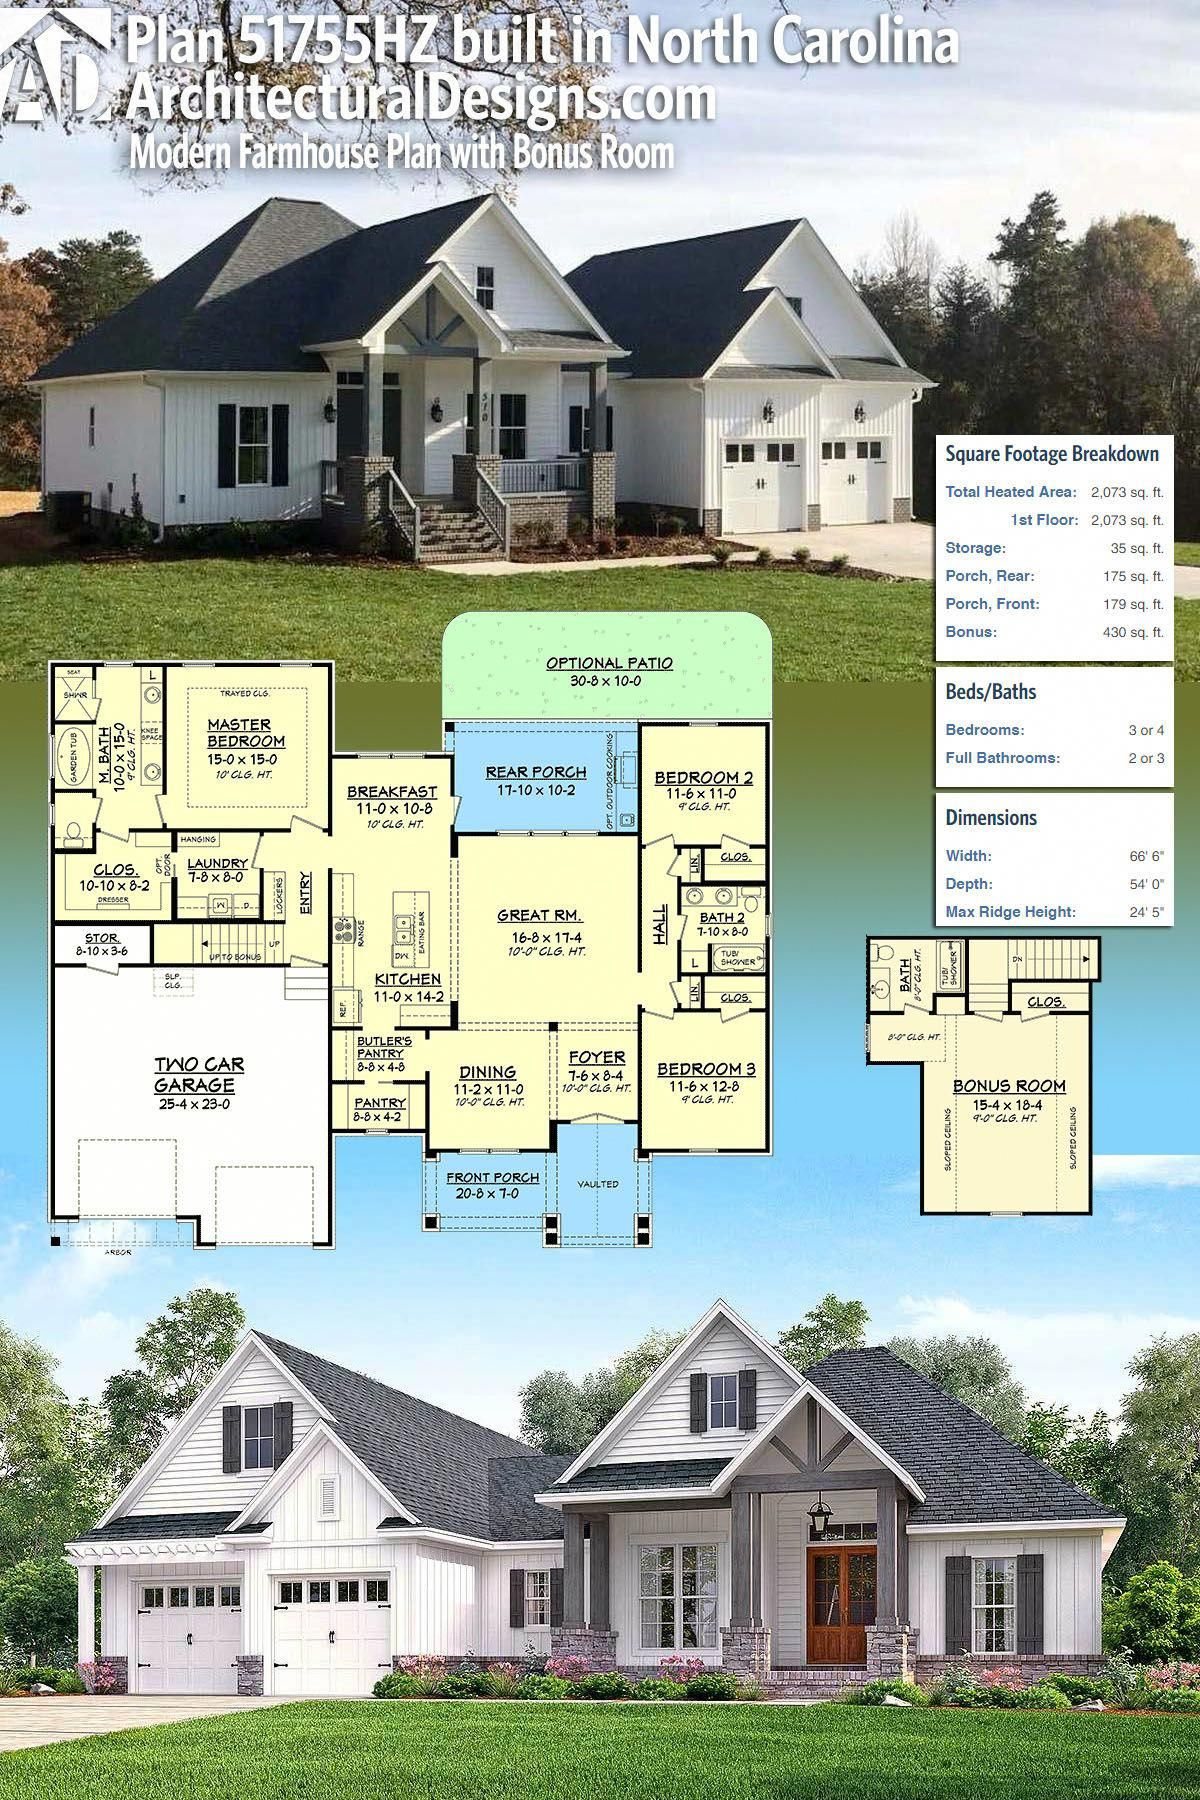 Our client built architectural designs house plan hz in reverse orientation north carolina the also rh pinterest